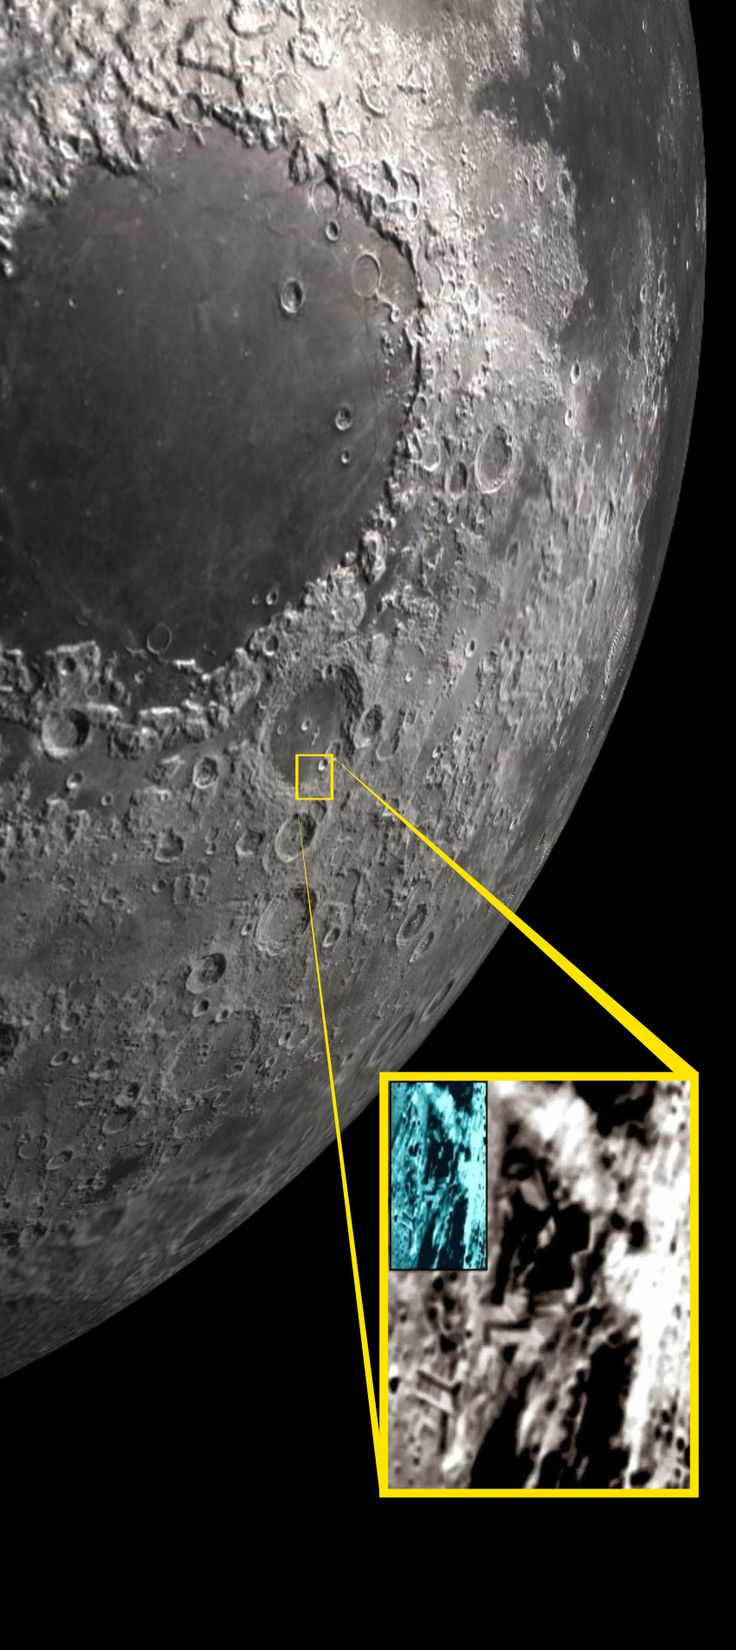 ancient aliens moon landing - photo #8